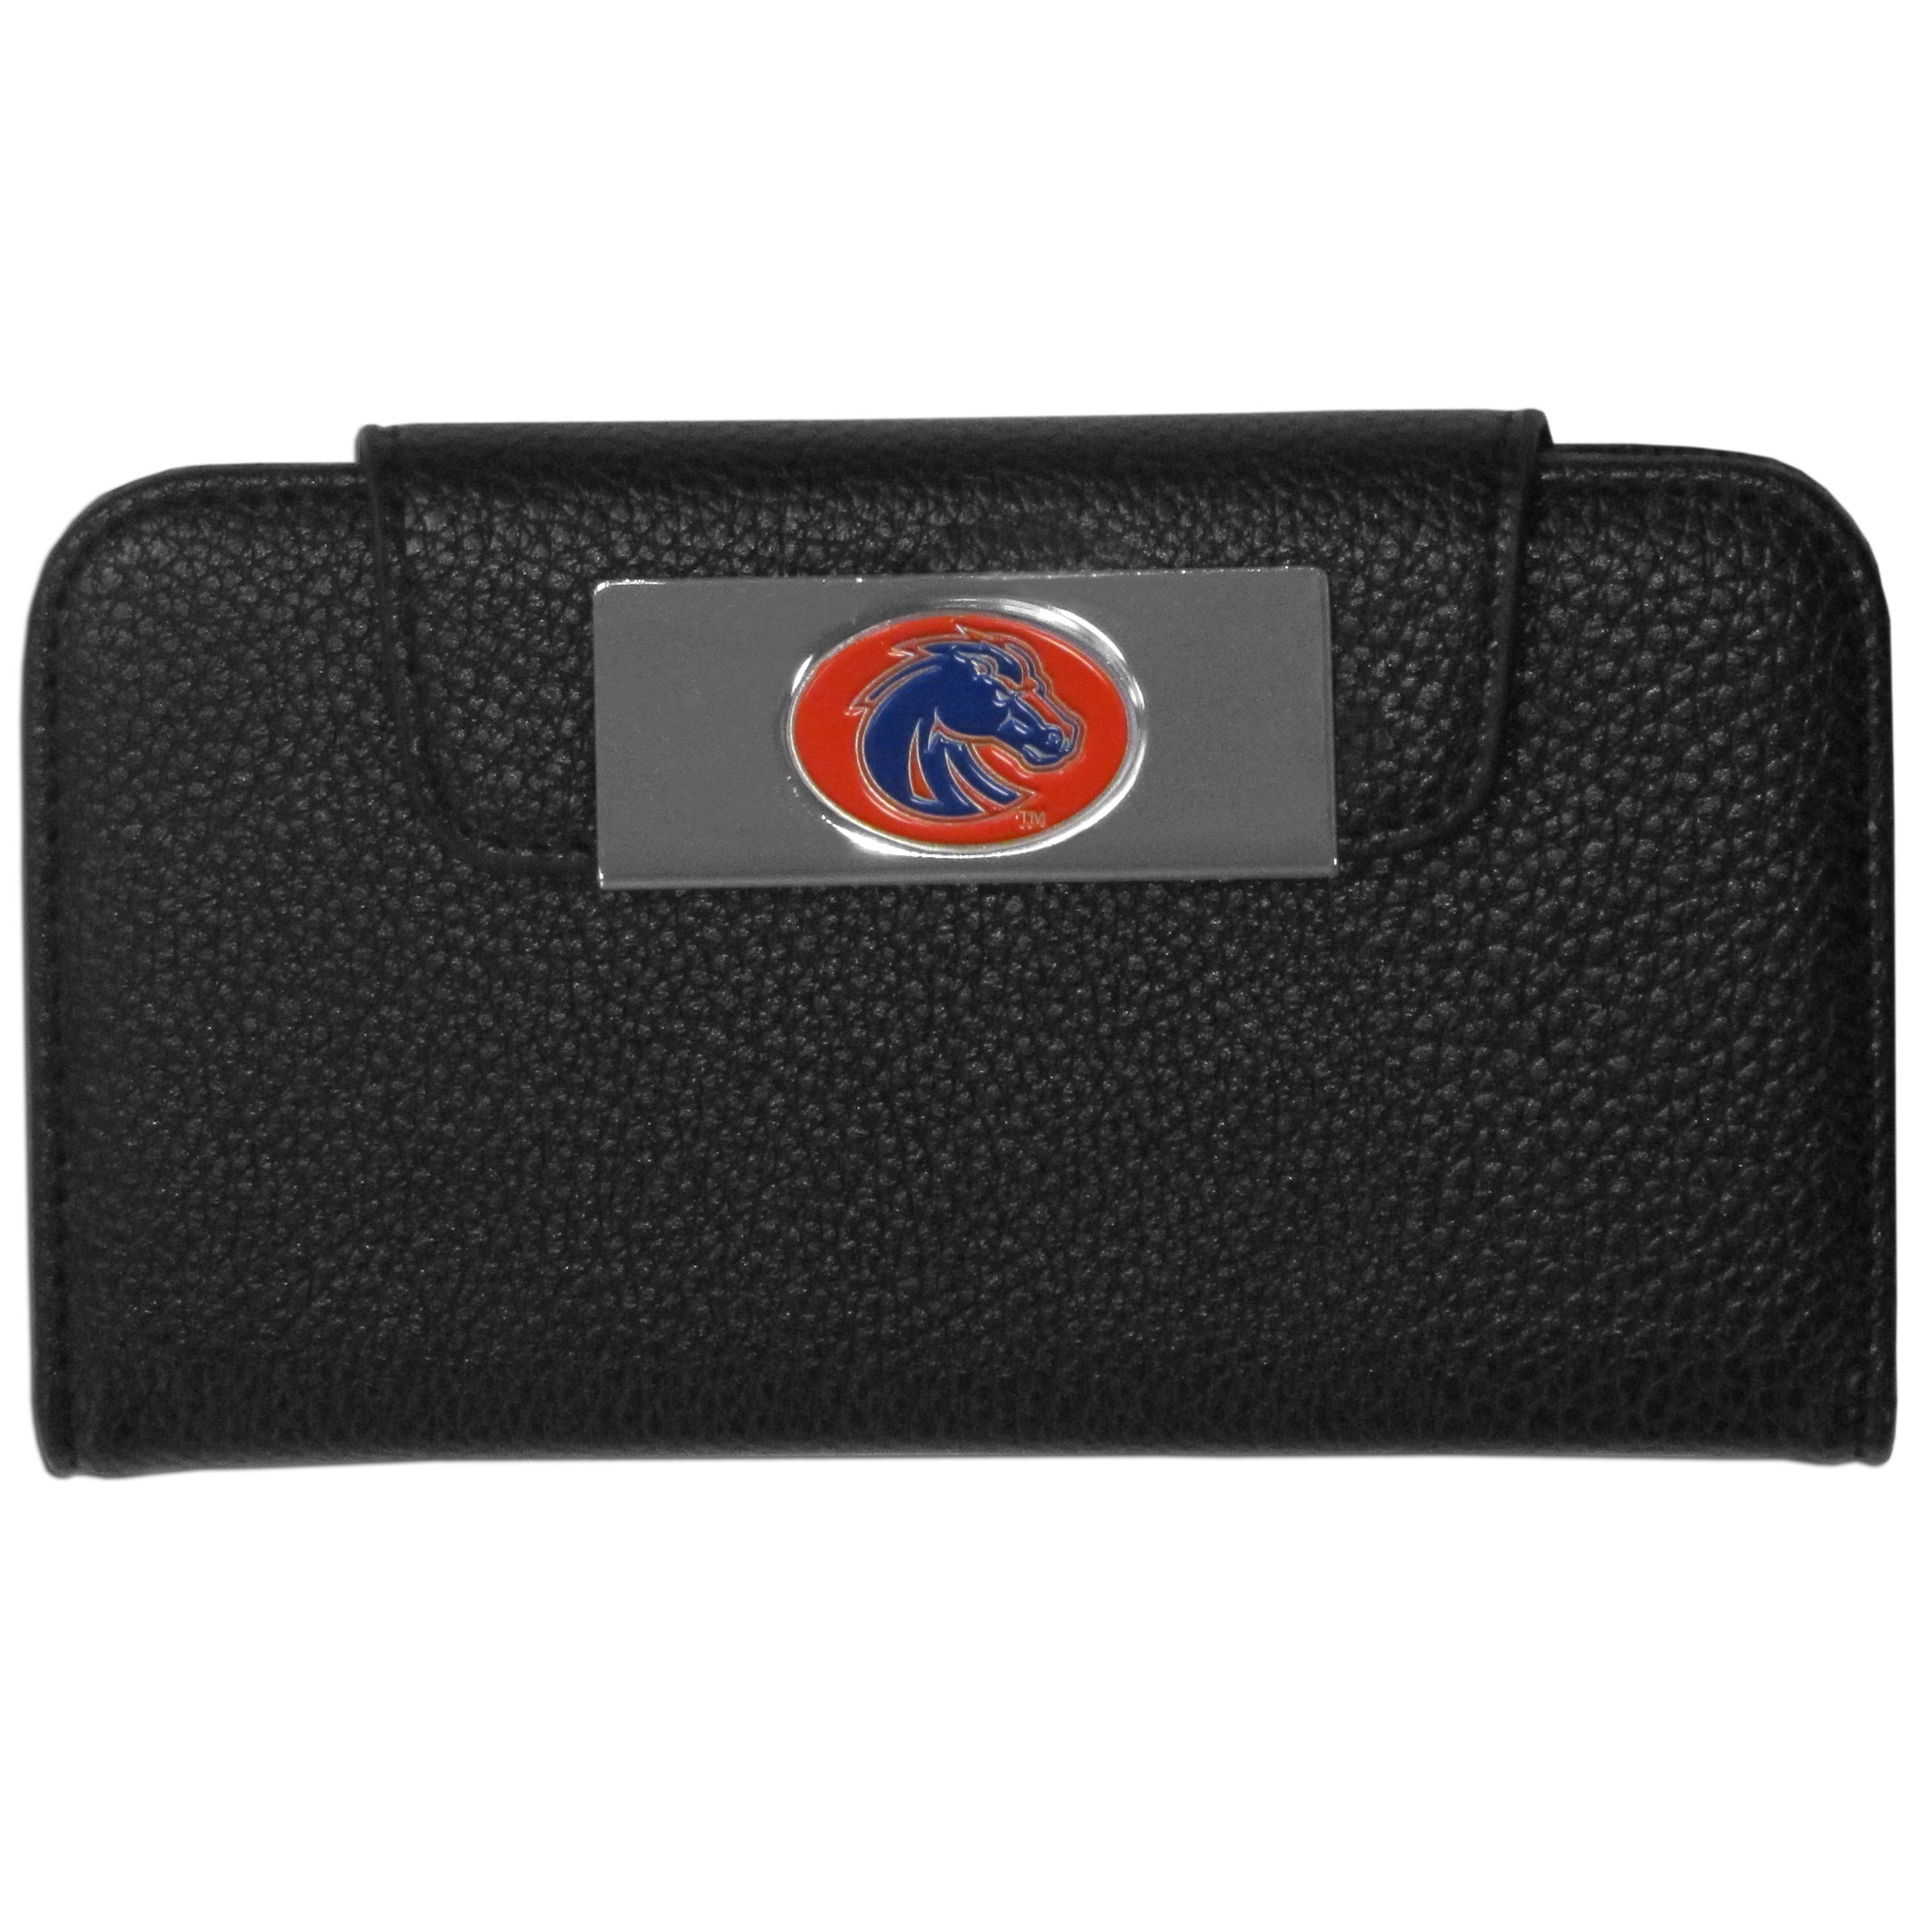 Boise St. Broncos iPhone 5/5S Wallet Case - This new & wildly popular case is ideal for those who like to travel light! The stylish case has an inner hard shell that securely holds your phone while allowing complete access to the phone's functionality. The flip cover has slots for credit cards, business cards and identification. The magnetic flip cover has a metal Boise St. Broncos emblem on a high polish chrome backing. Fits the iPhone 5/5S